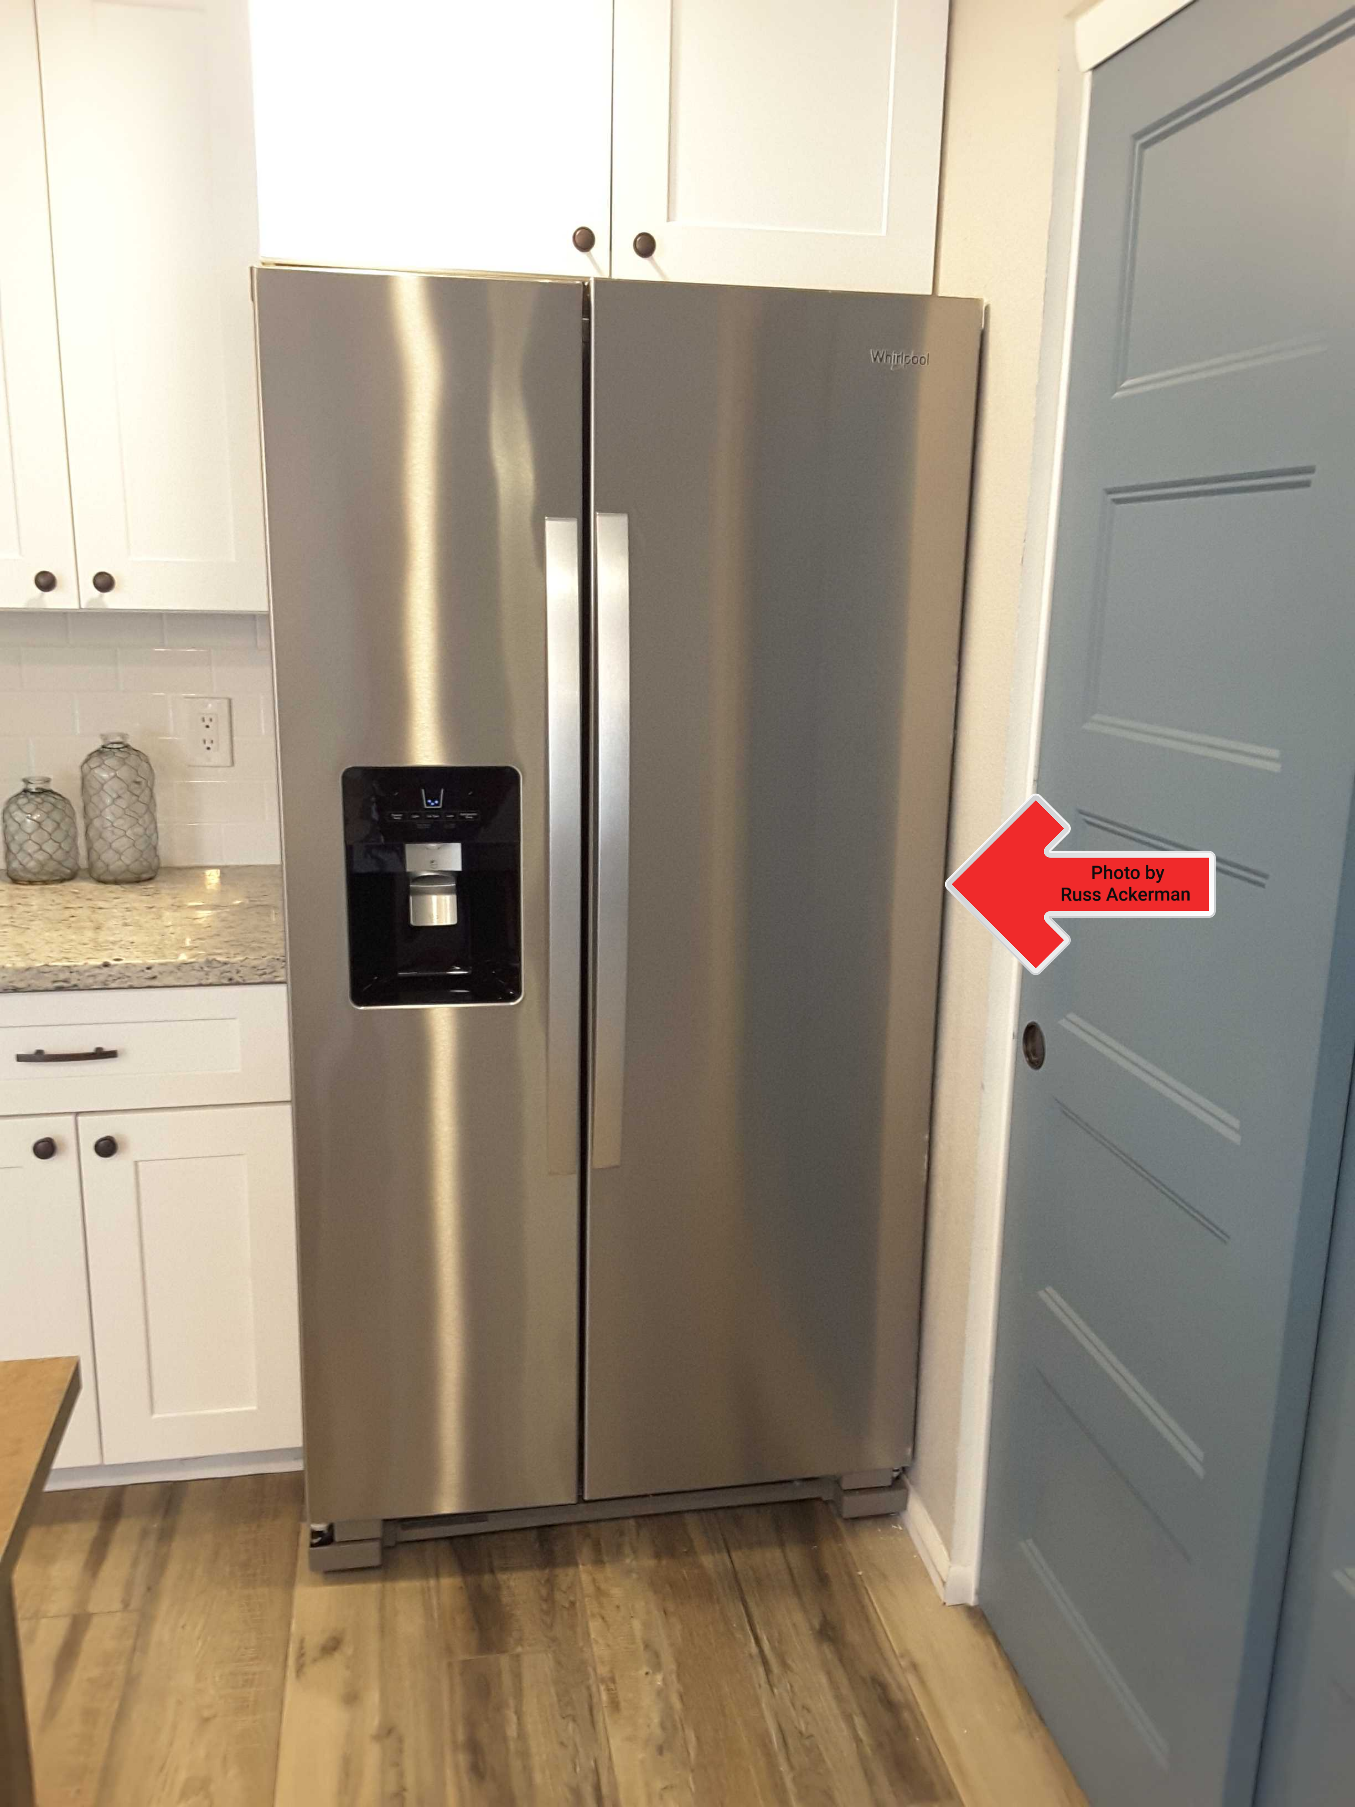 This brand new refrigerator is too wide preventing the door from opening fully. Due to poor planning, it'll need to be replaced for a smaller unit.